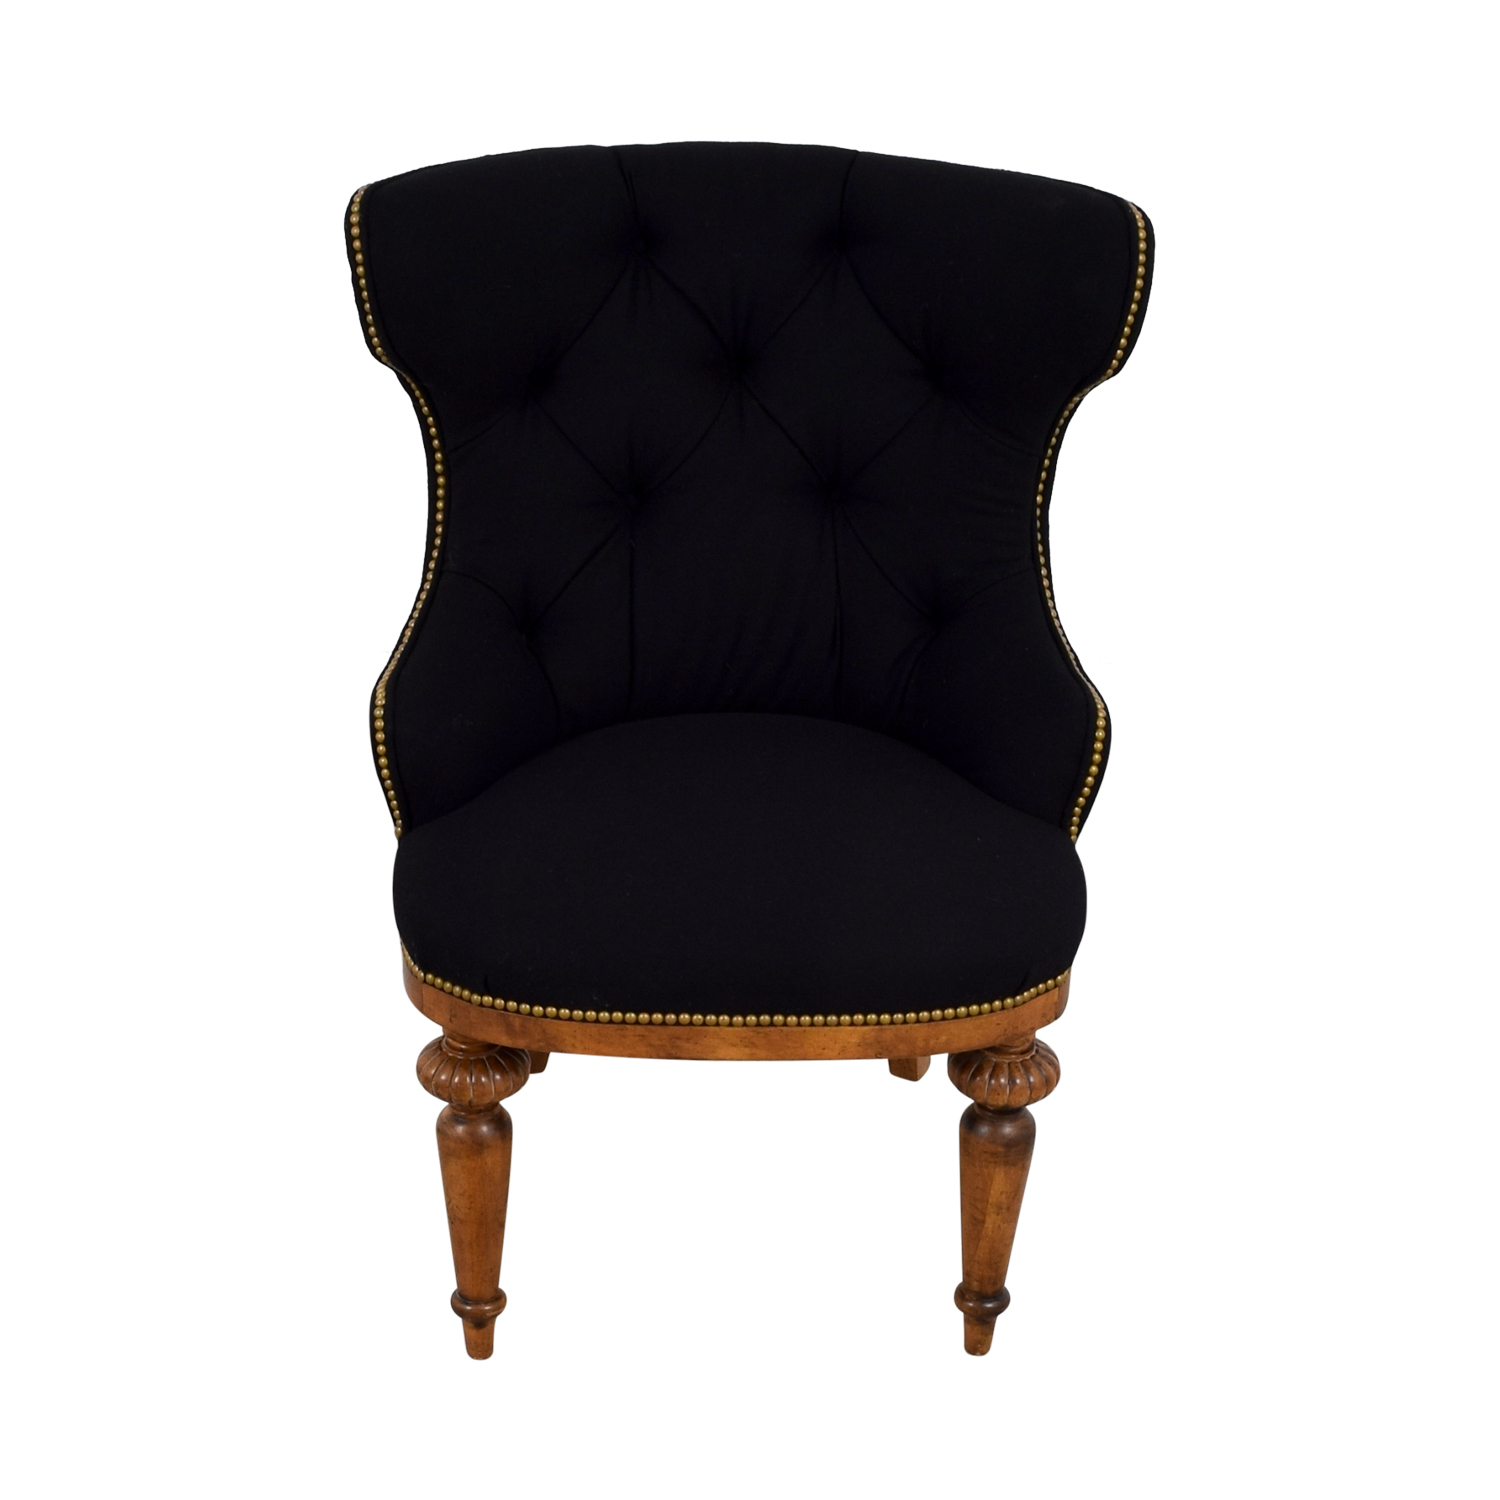 Furniture Masters Furniture Masters Black Tufted Nailhead Accent Chair coupon